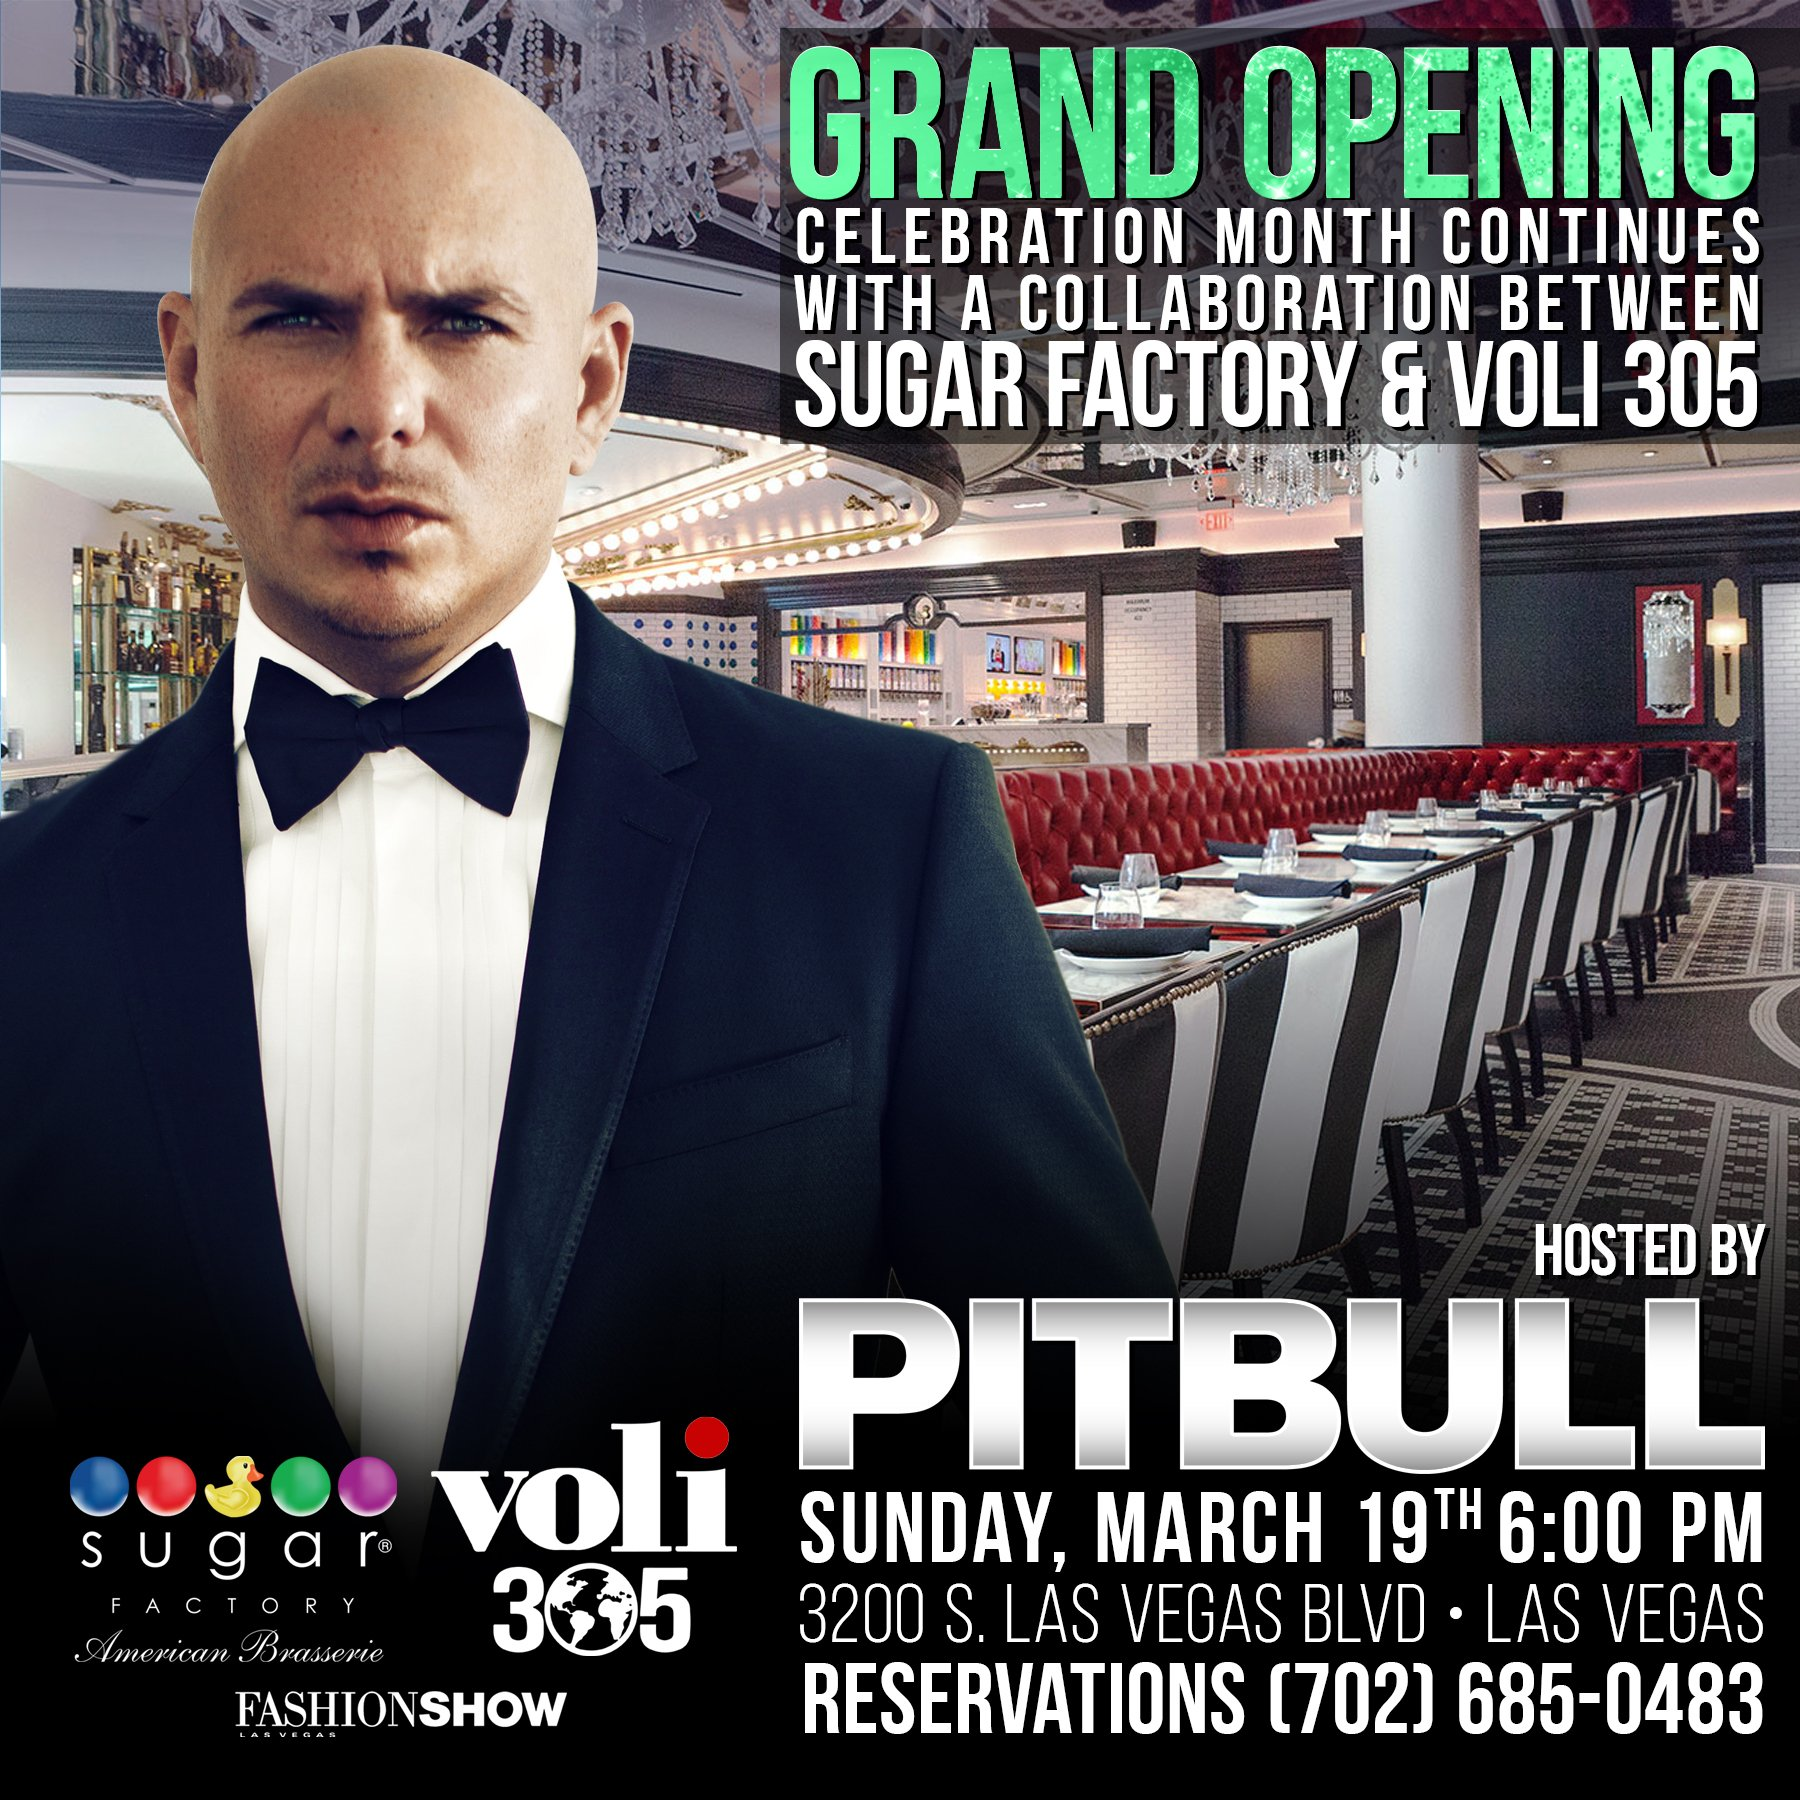 Join the grand opening party in Vegas with @SugarFactory and @Voli305Vodka https://t.co/nEsfp9ERtc